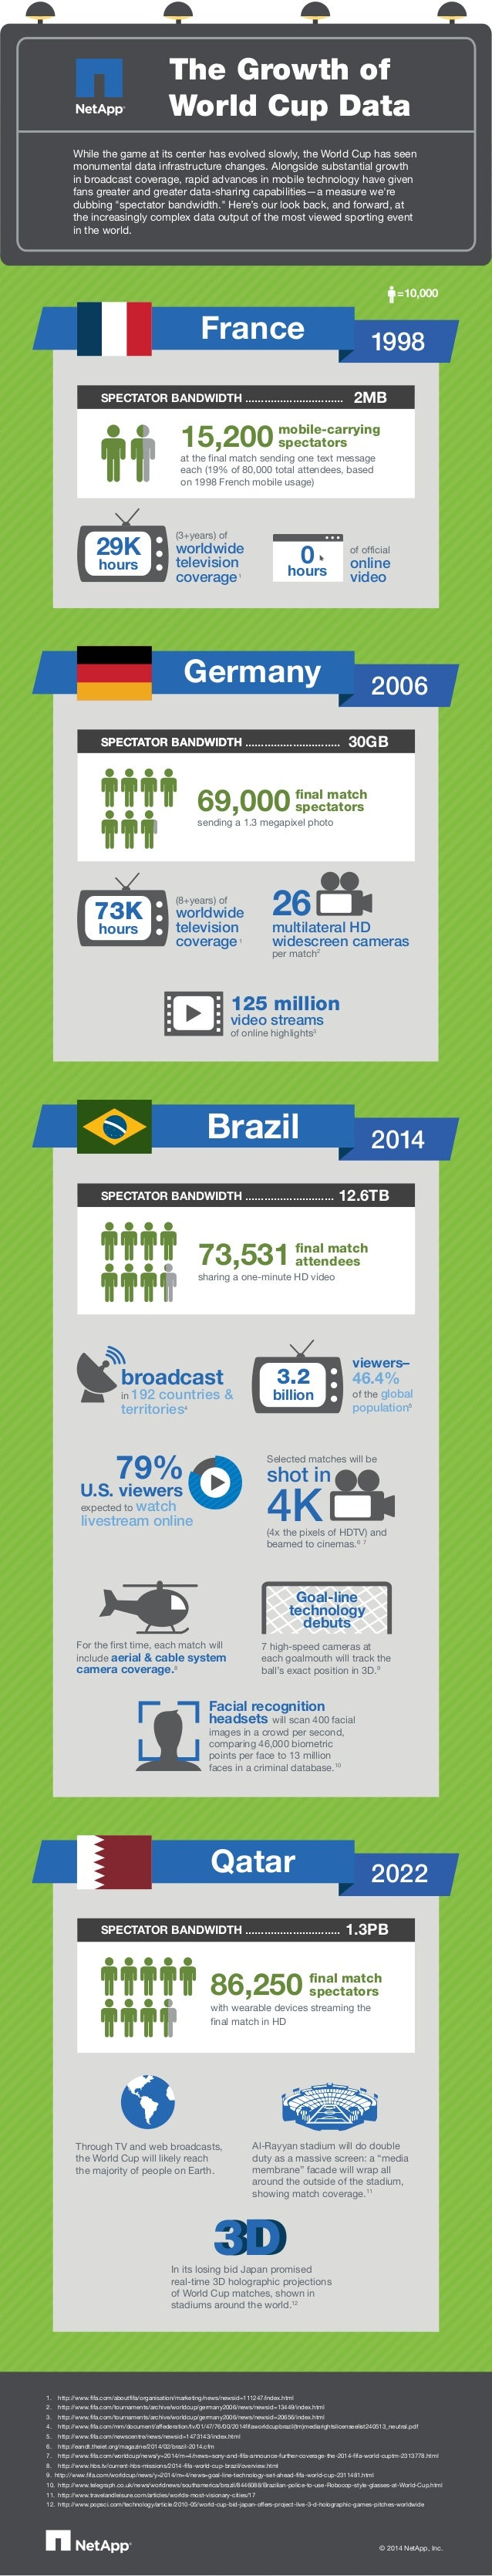 The Growth of World Cup Data